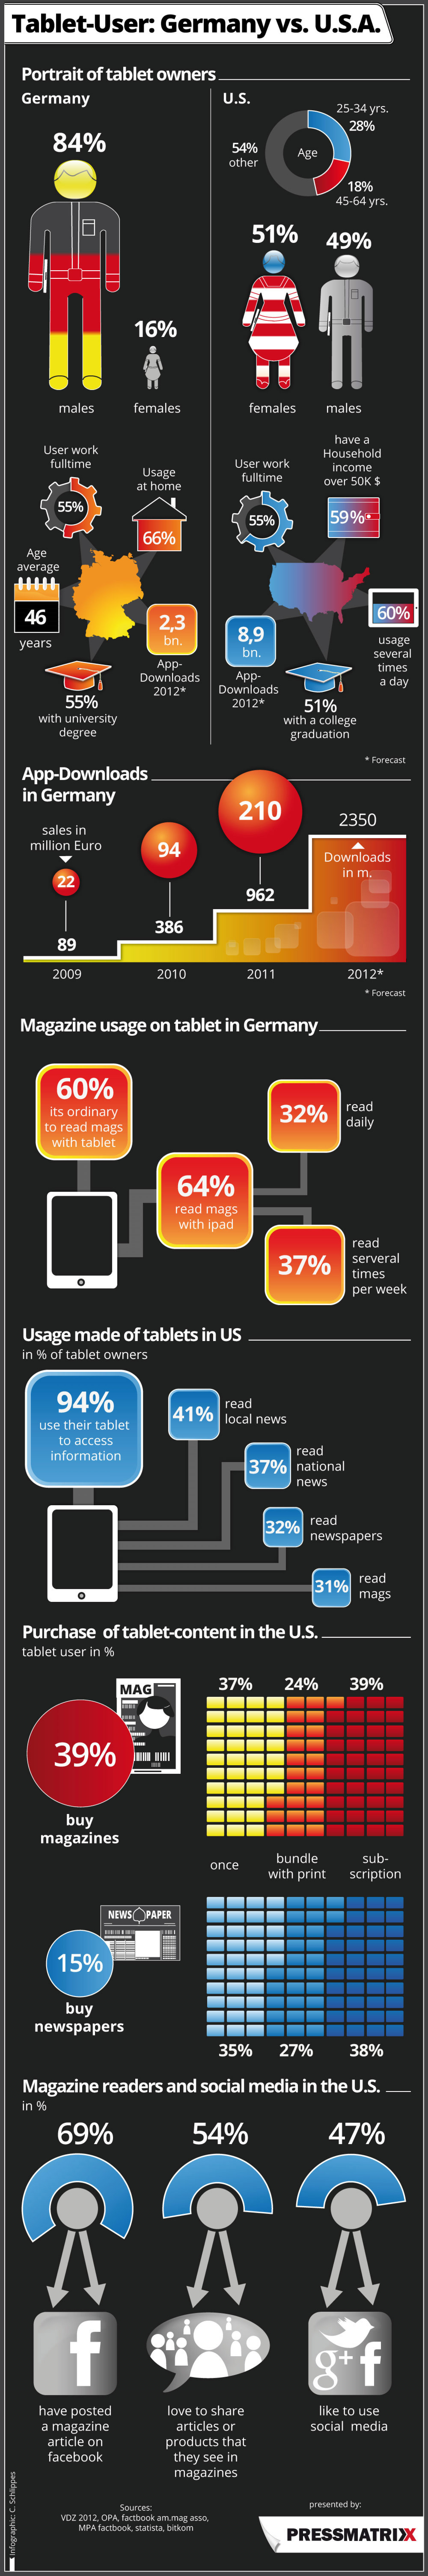 Tablet-User: Germany cs. U.S.A. Infographic